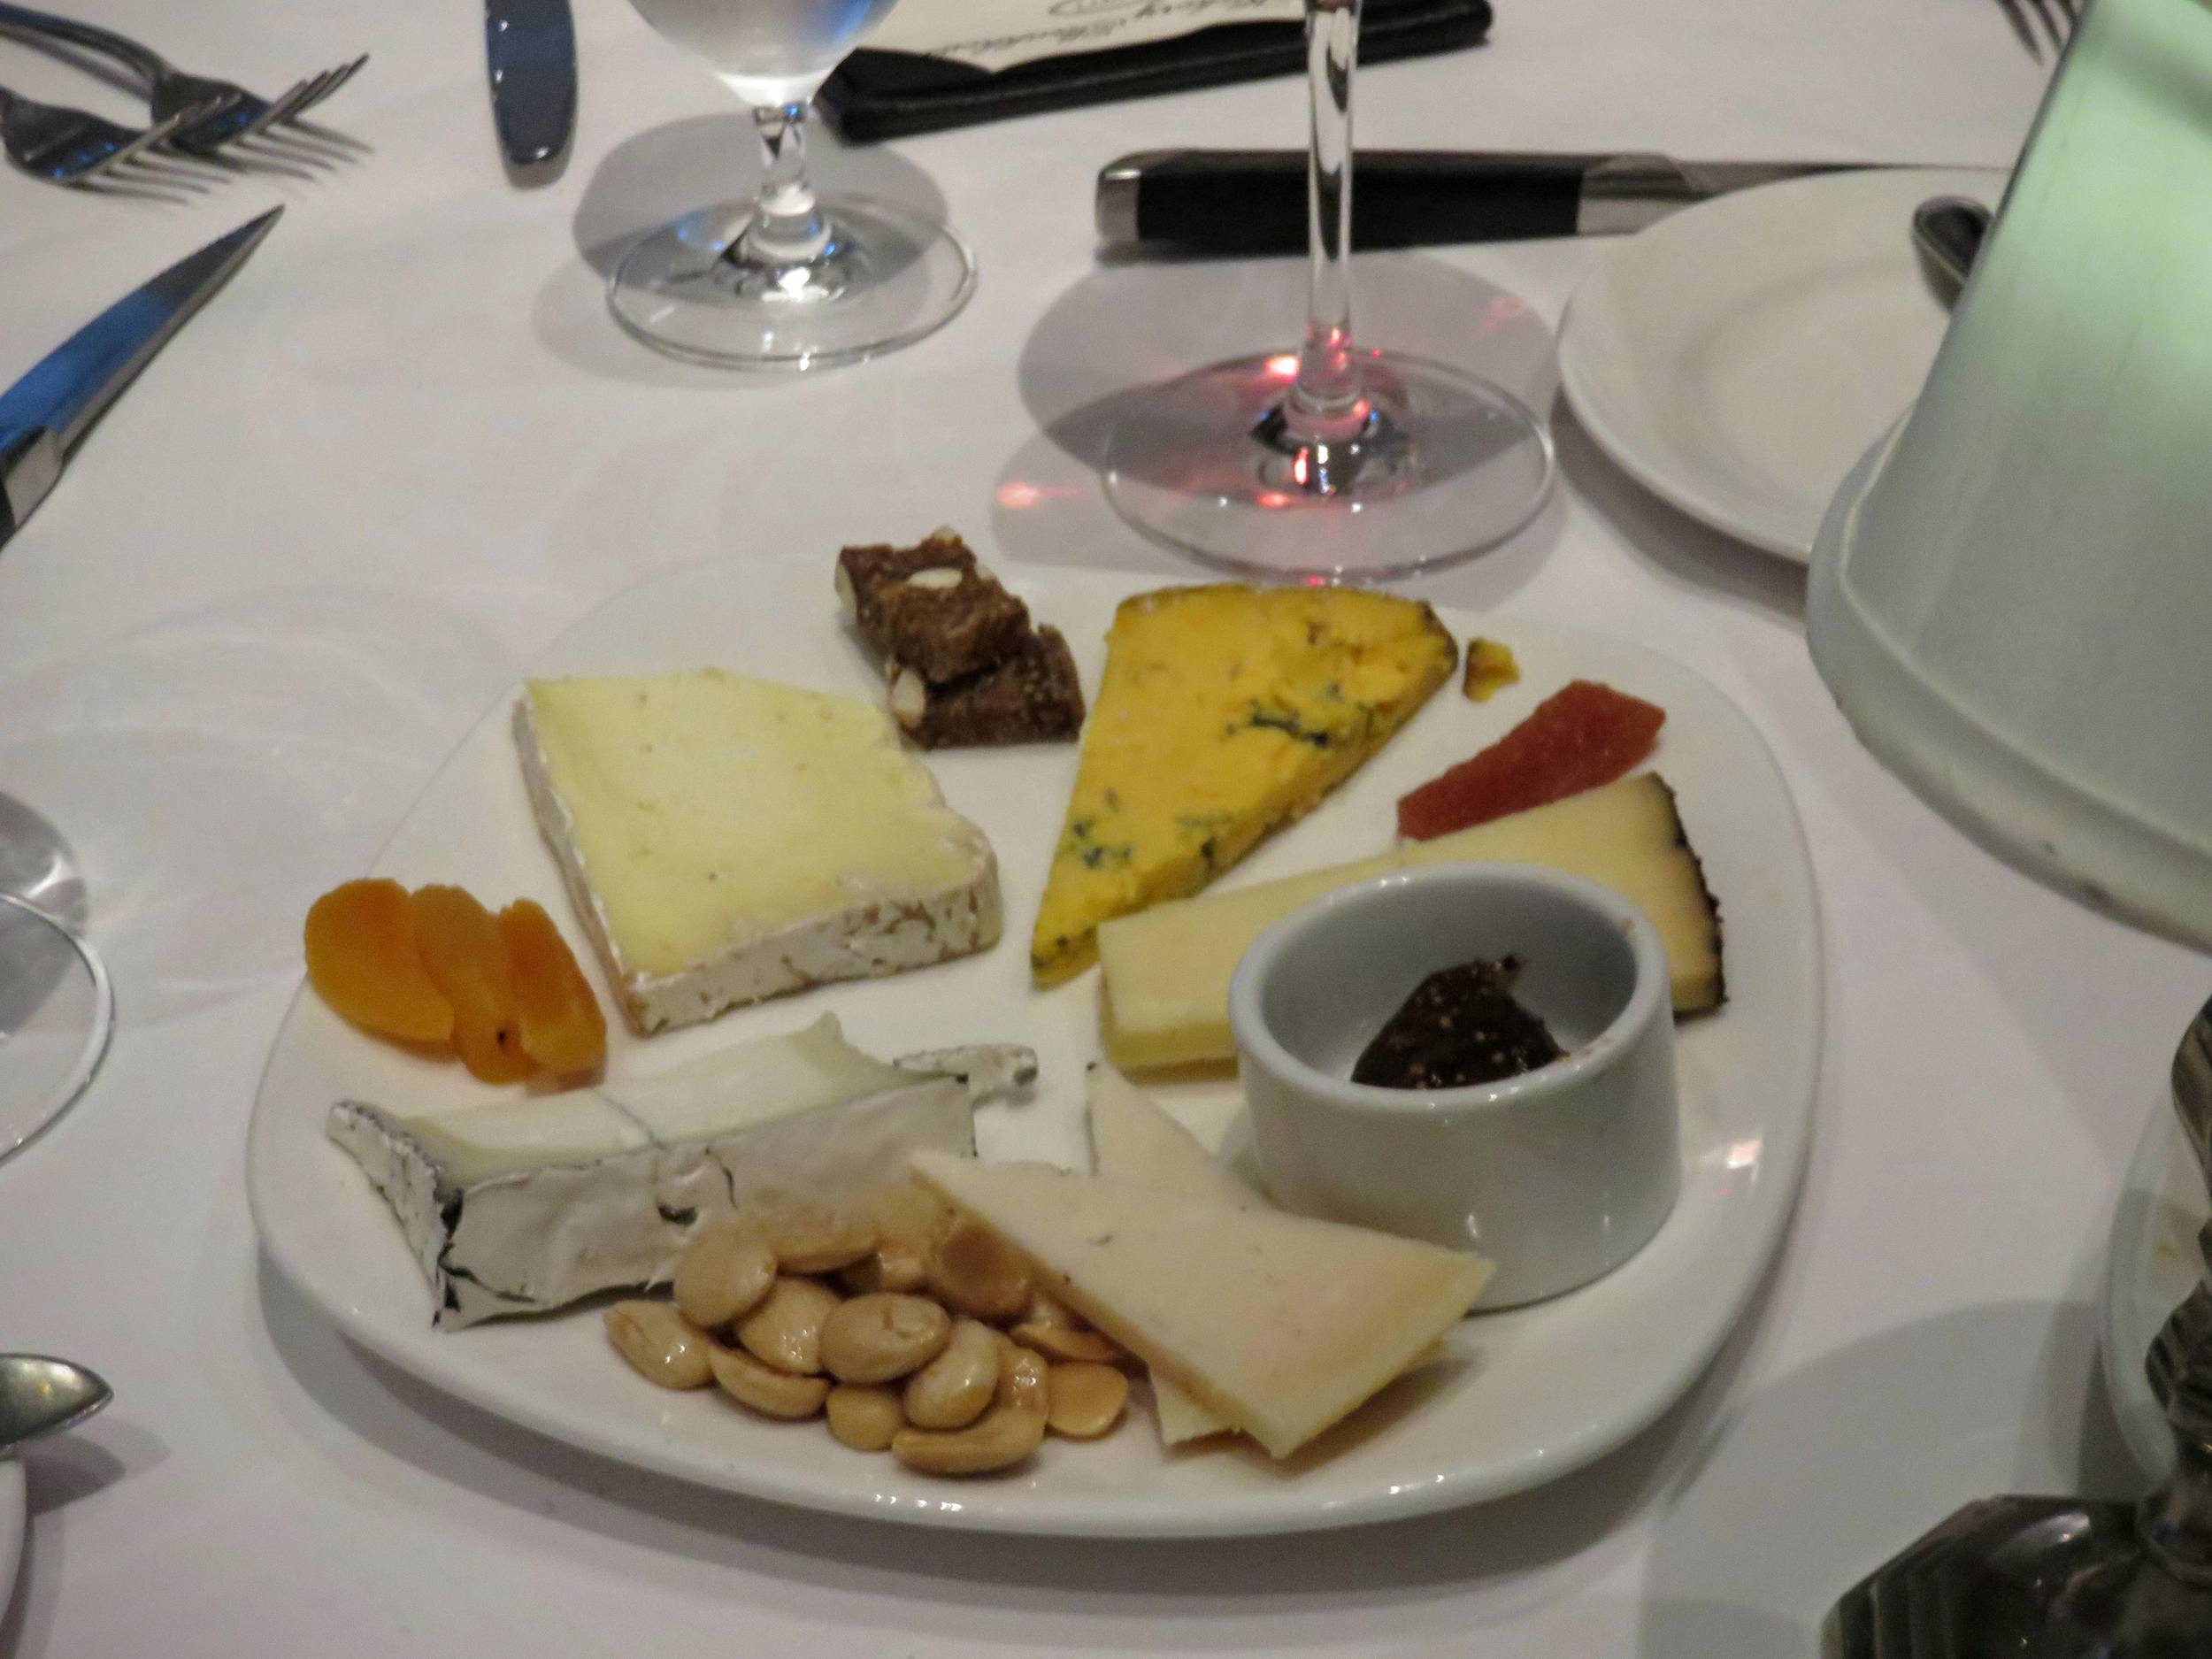 My favorite of the cheeses was the Humboldt Fog, an American-made cheese with a soft white interior, a streak of blue, and a blooming rind. It's on this plate at 8 o'clock.